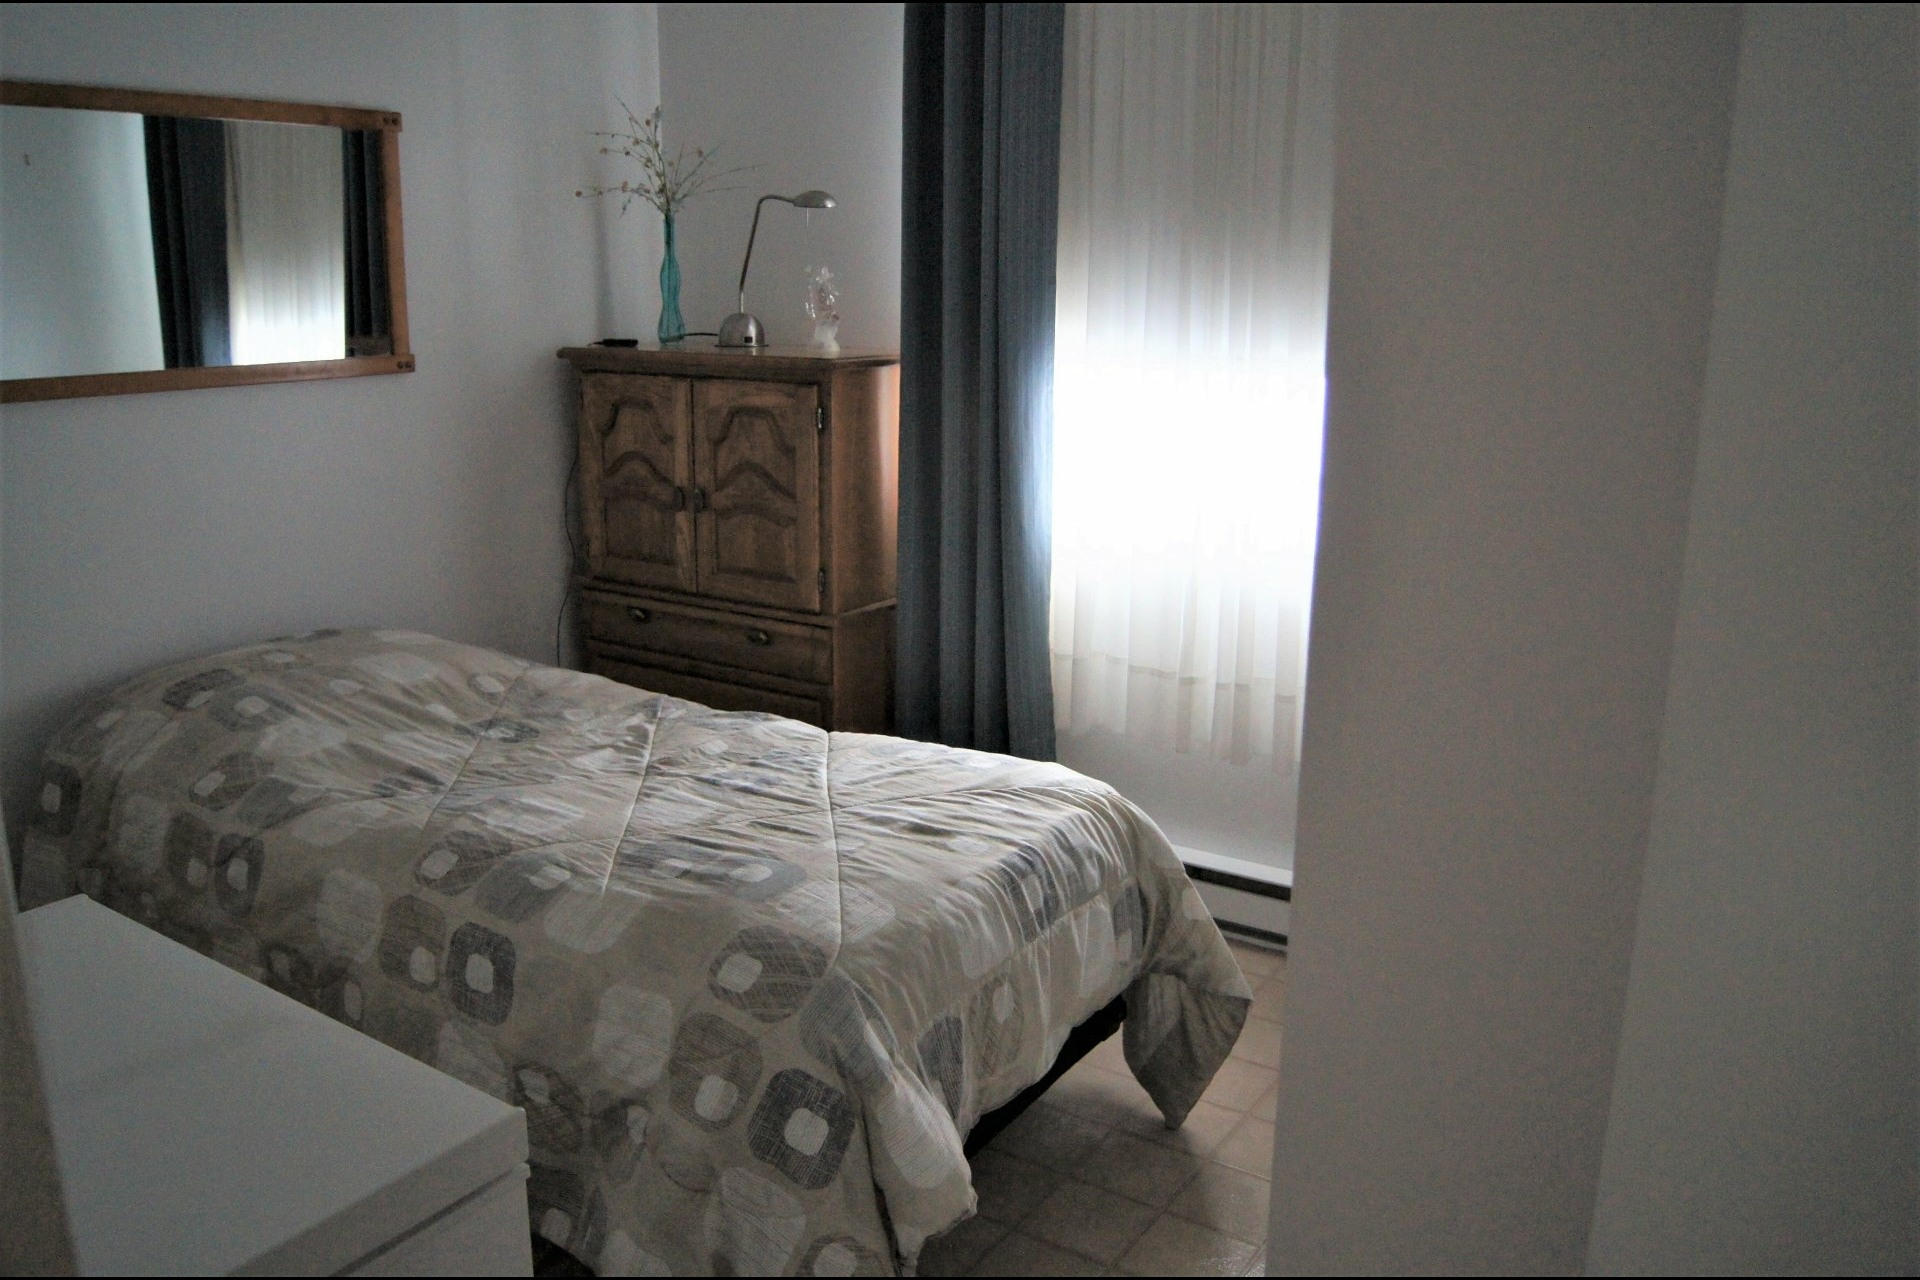 image 4 - Income property For sale La Tuque - 4 rooms